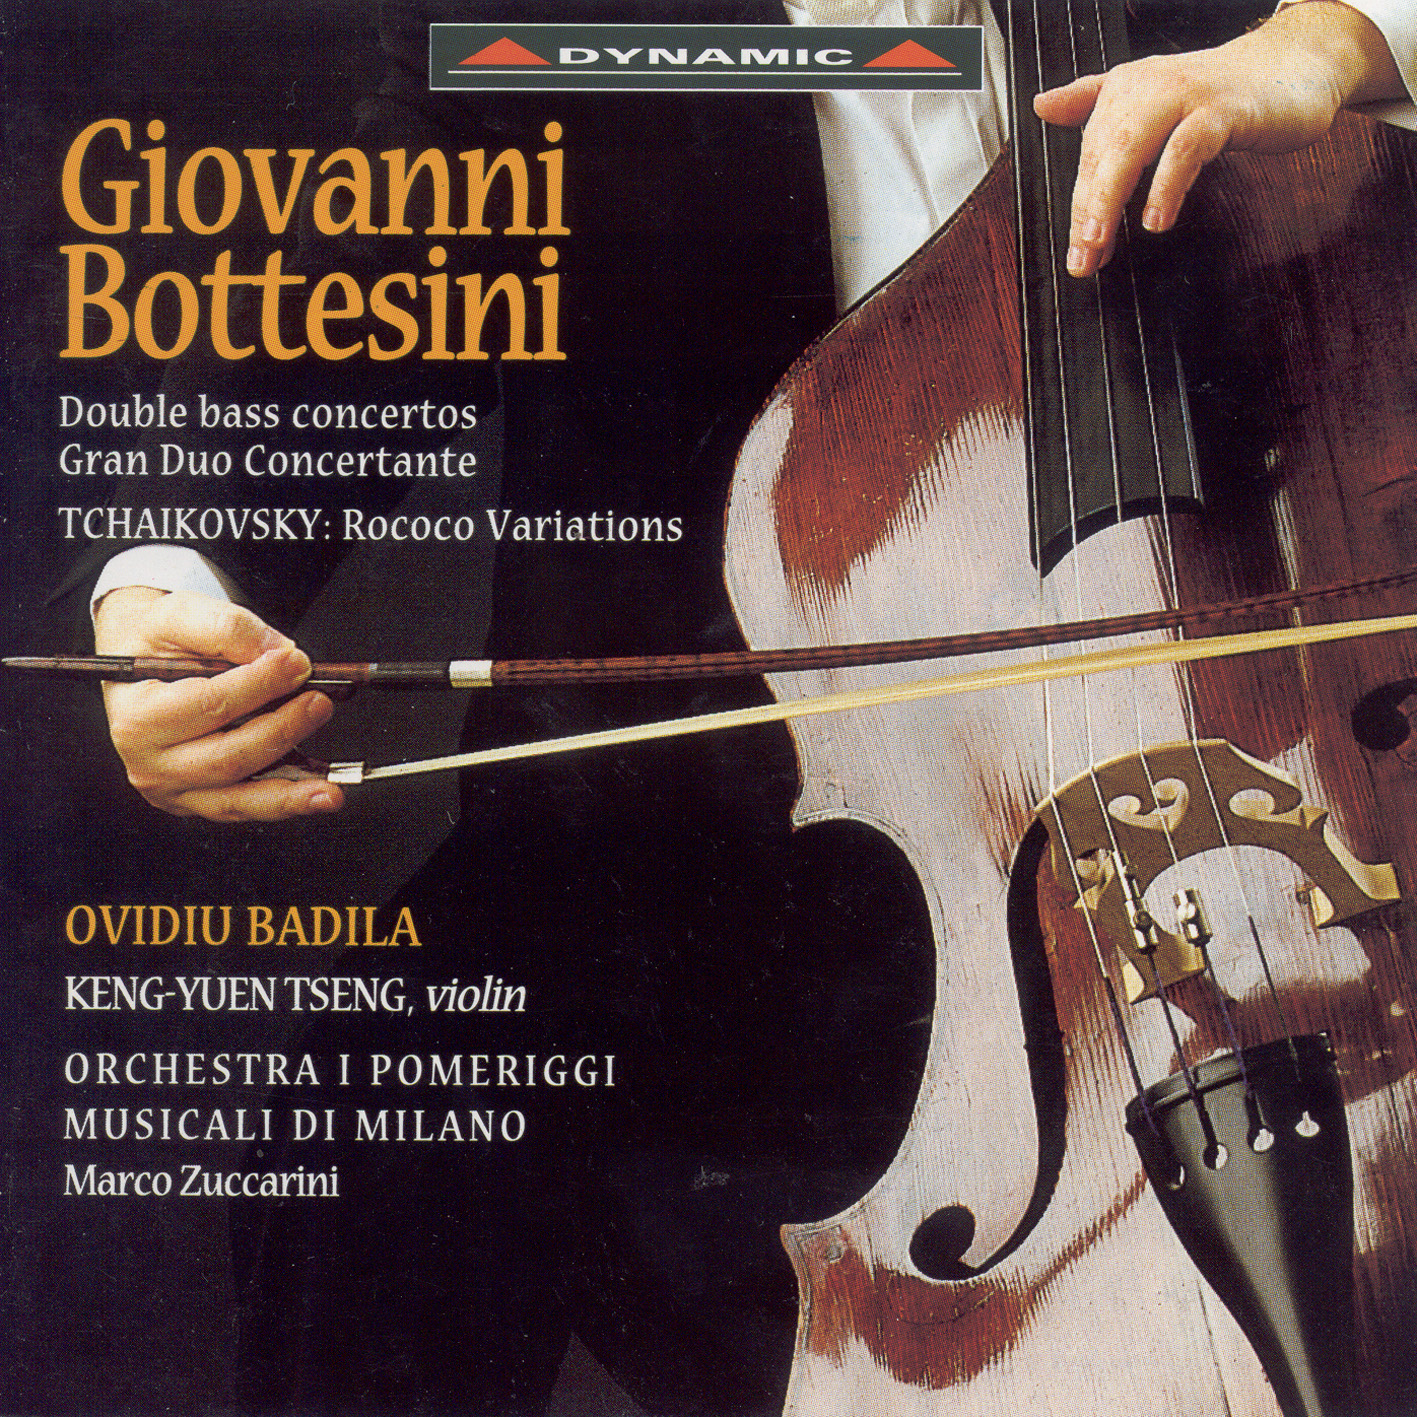 Bottesini, G.: Double Bass Concertos Nos. 1 and 2 - Tchaikovsky, P.I.: Rococo Variations